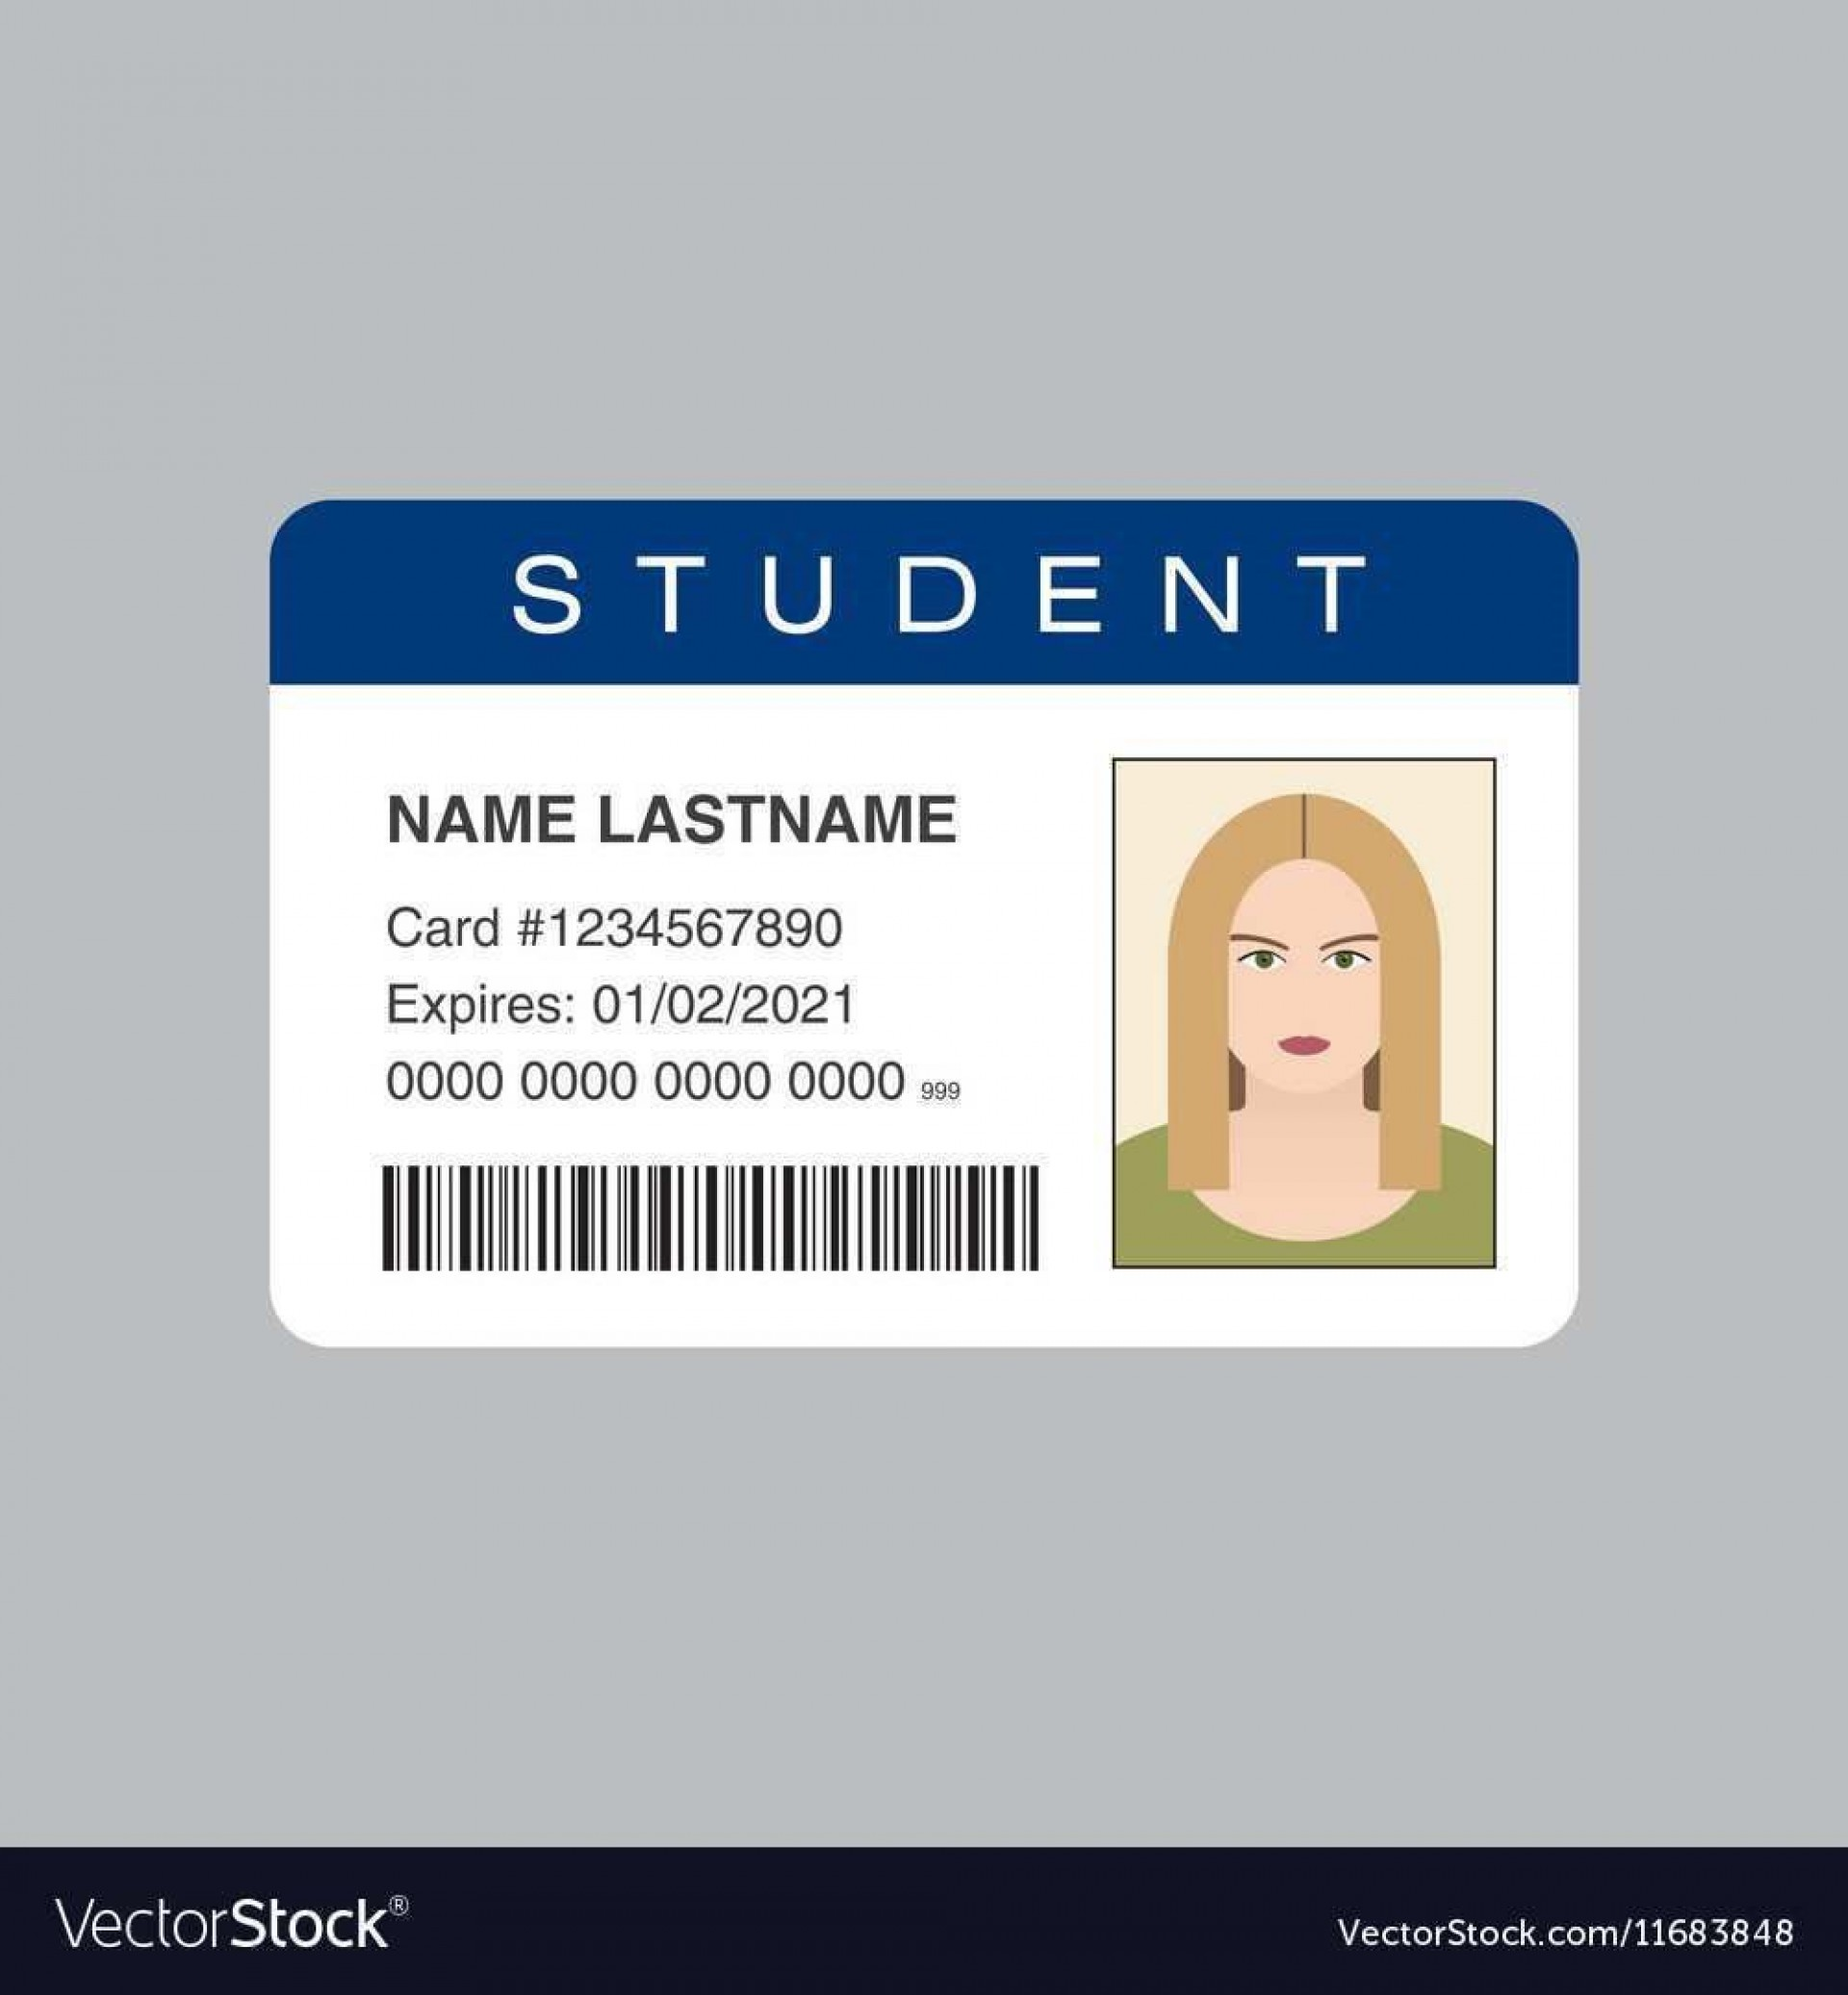 002 Fantastic Student Id Card Template High Resolution  Free Psd Download Word School1920